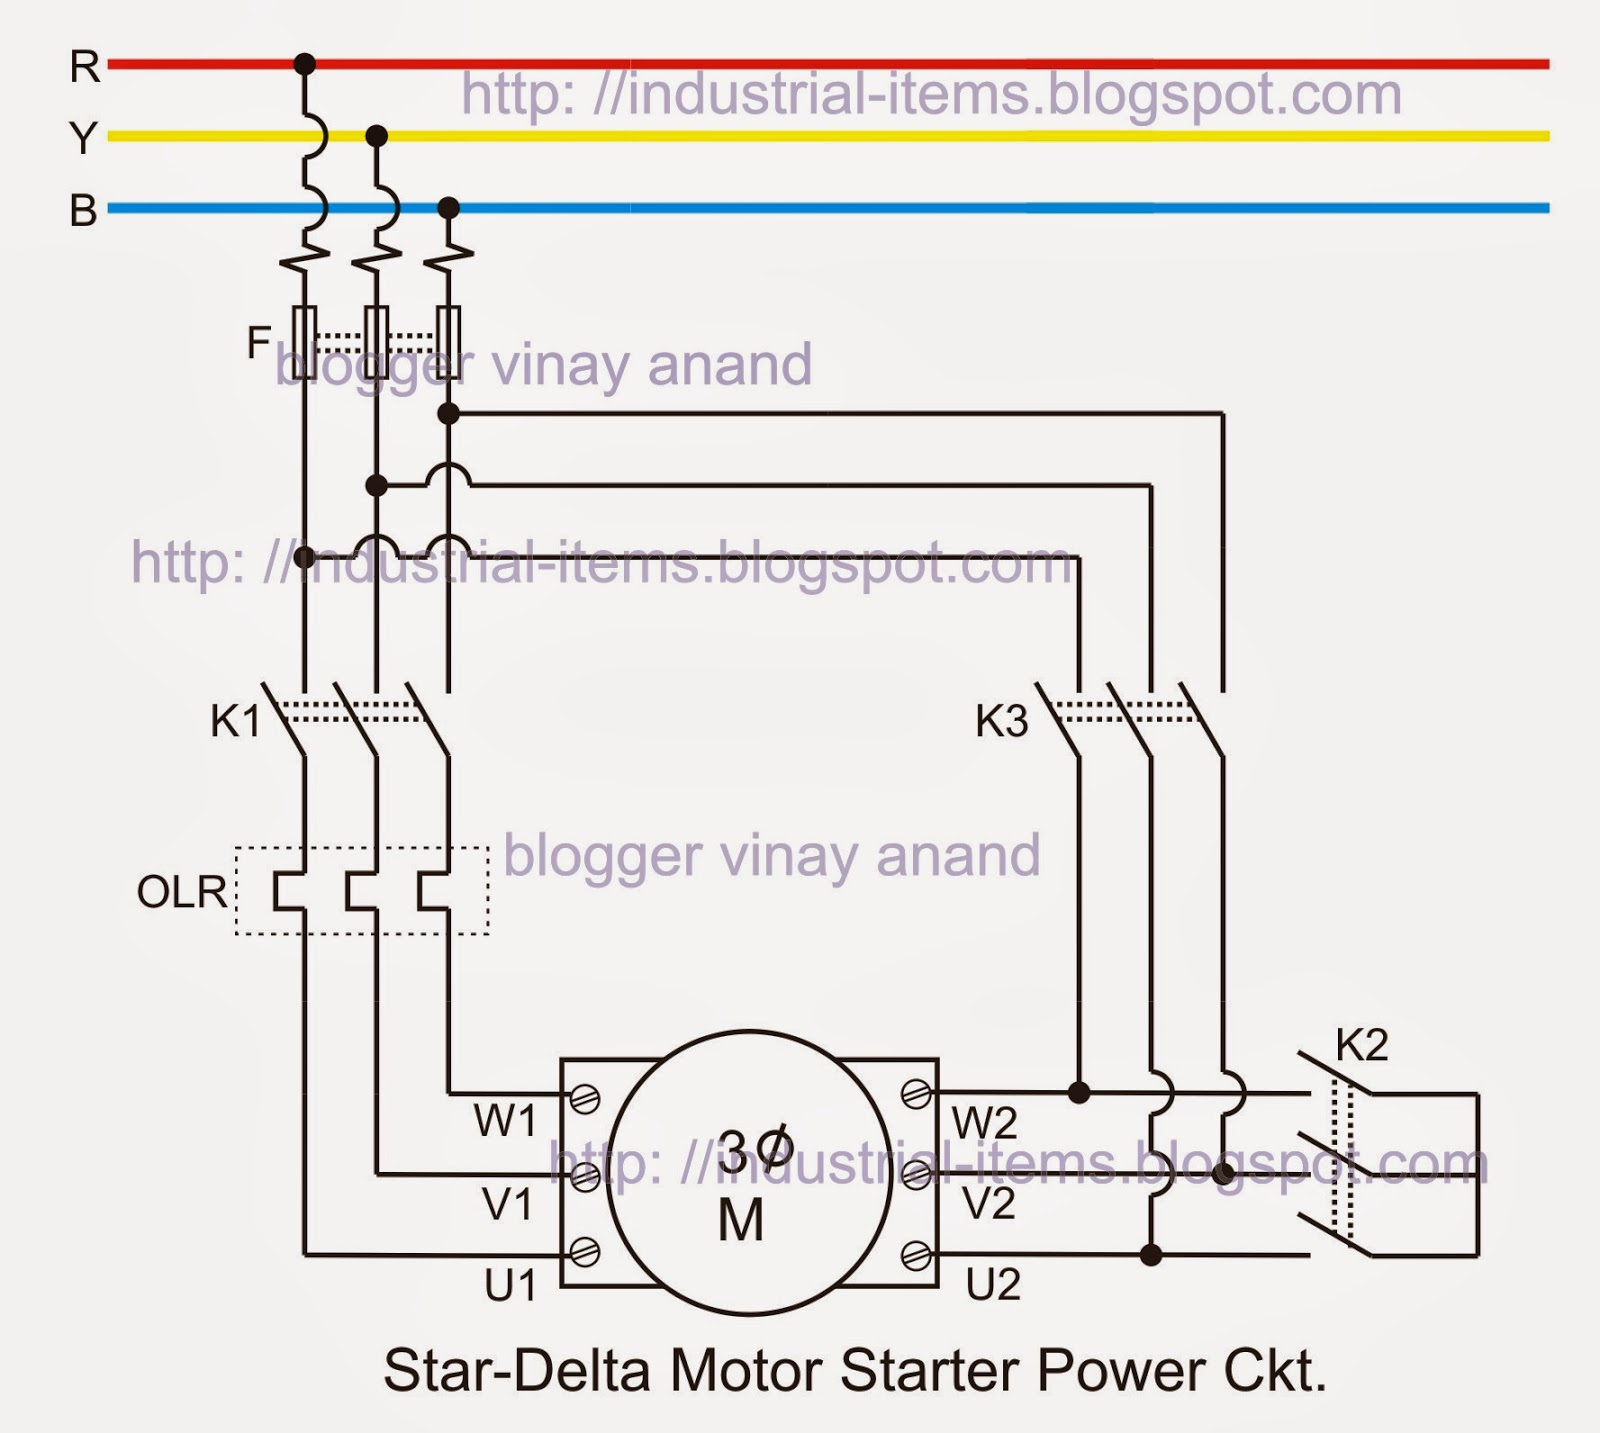 Star+Delta+power+Ckt. gk, current affairs, tutorials & articles star delta starter theory star delta starter control wiring diagram with timer pdf at eliteediting.co